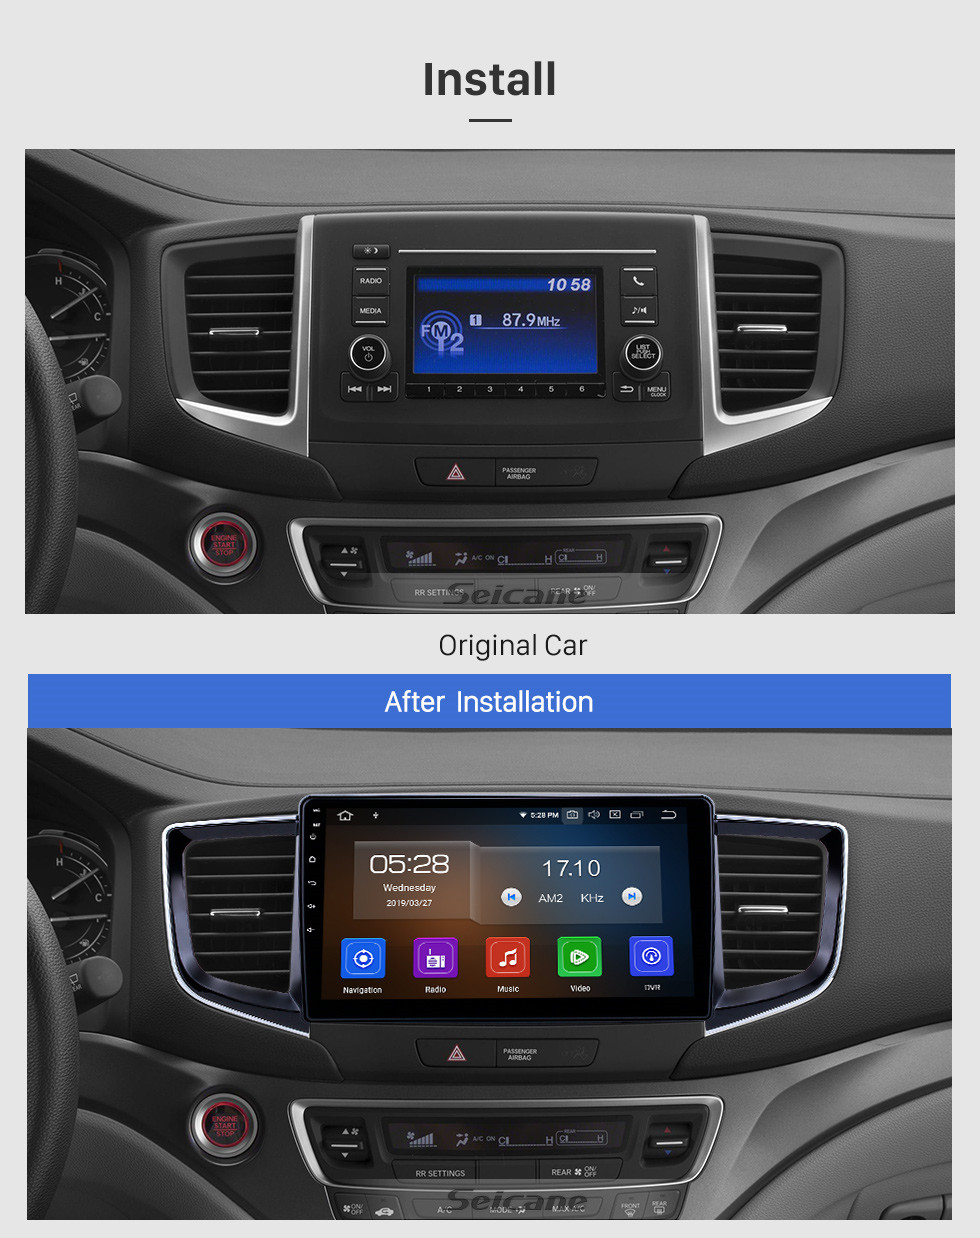 Seicane 10.1 inch Android 9.0 Radio for 2016-2018 Honda Pilot Bluetooth Touchscreen GPS Navigation Carplay USB AUX support TPMS DAB+ SWC